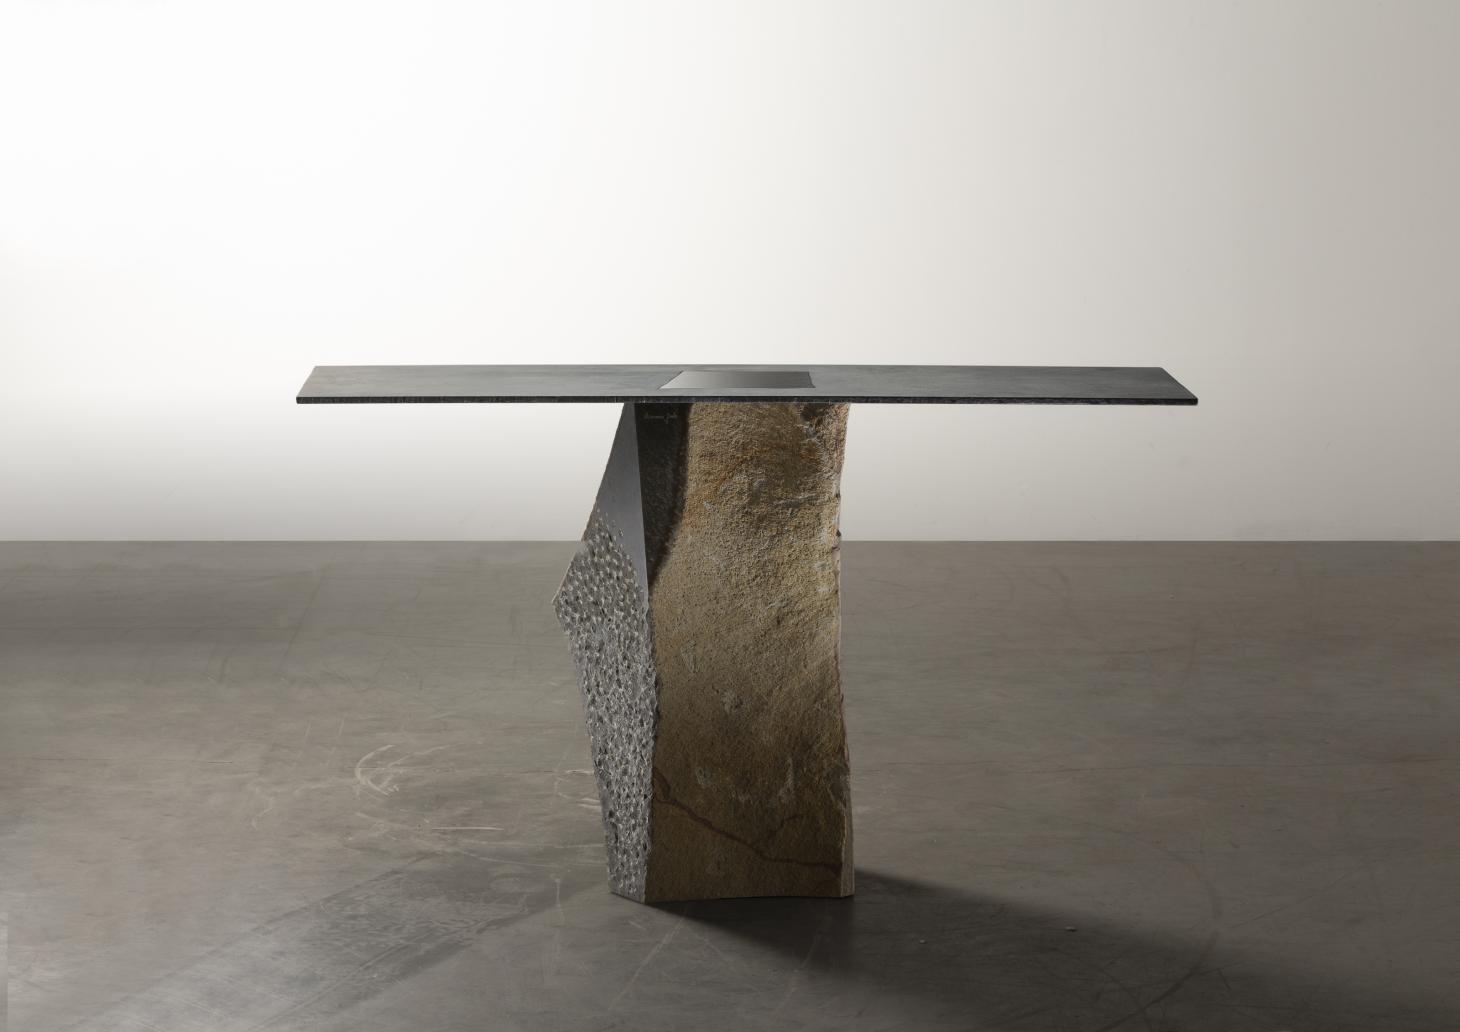 Table with stone base and square steel top